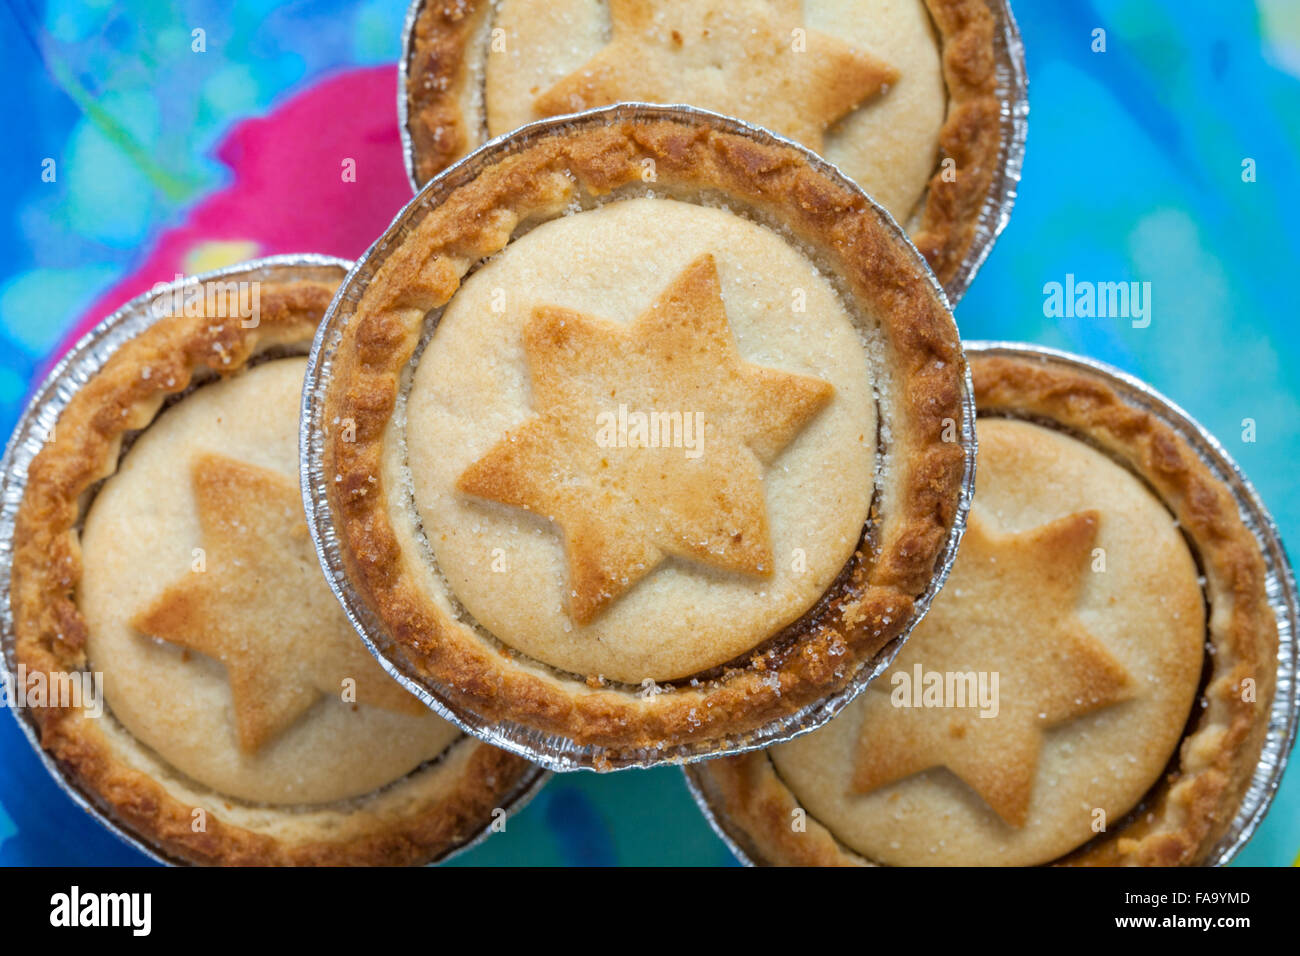 close up of mince pies with stars on, on plate ready for Christmas - Stock Image